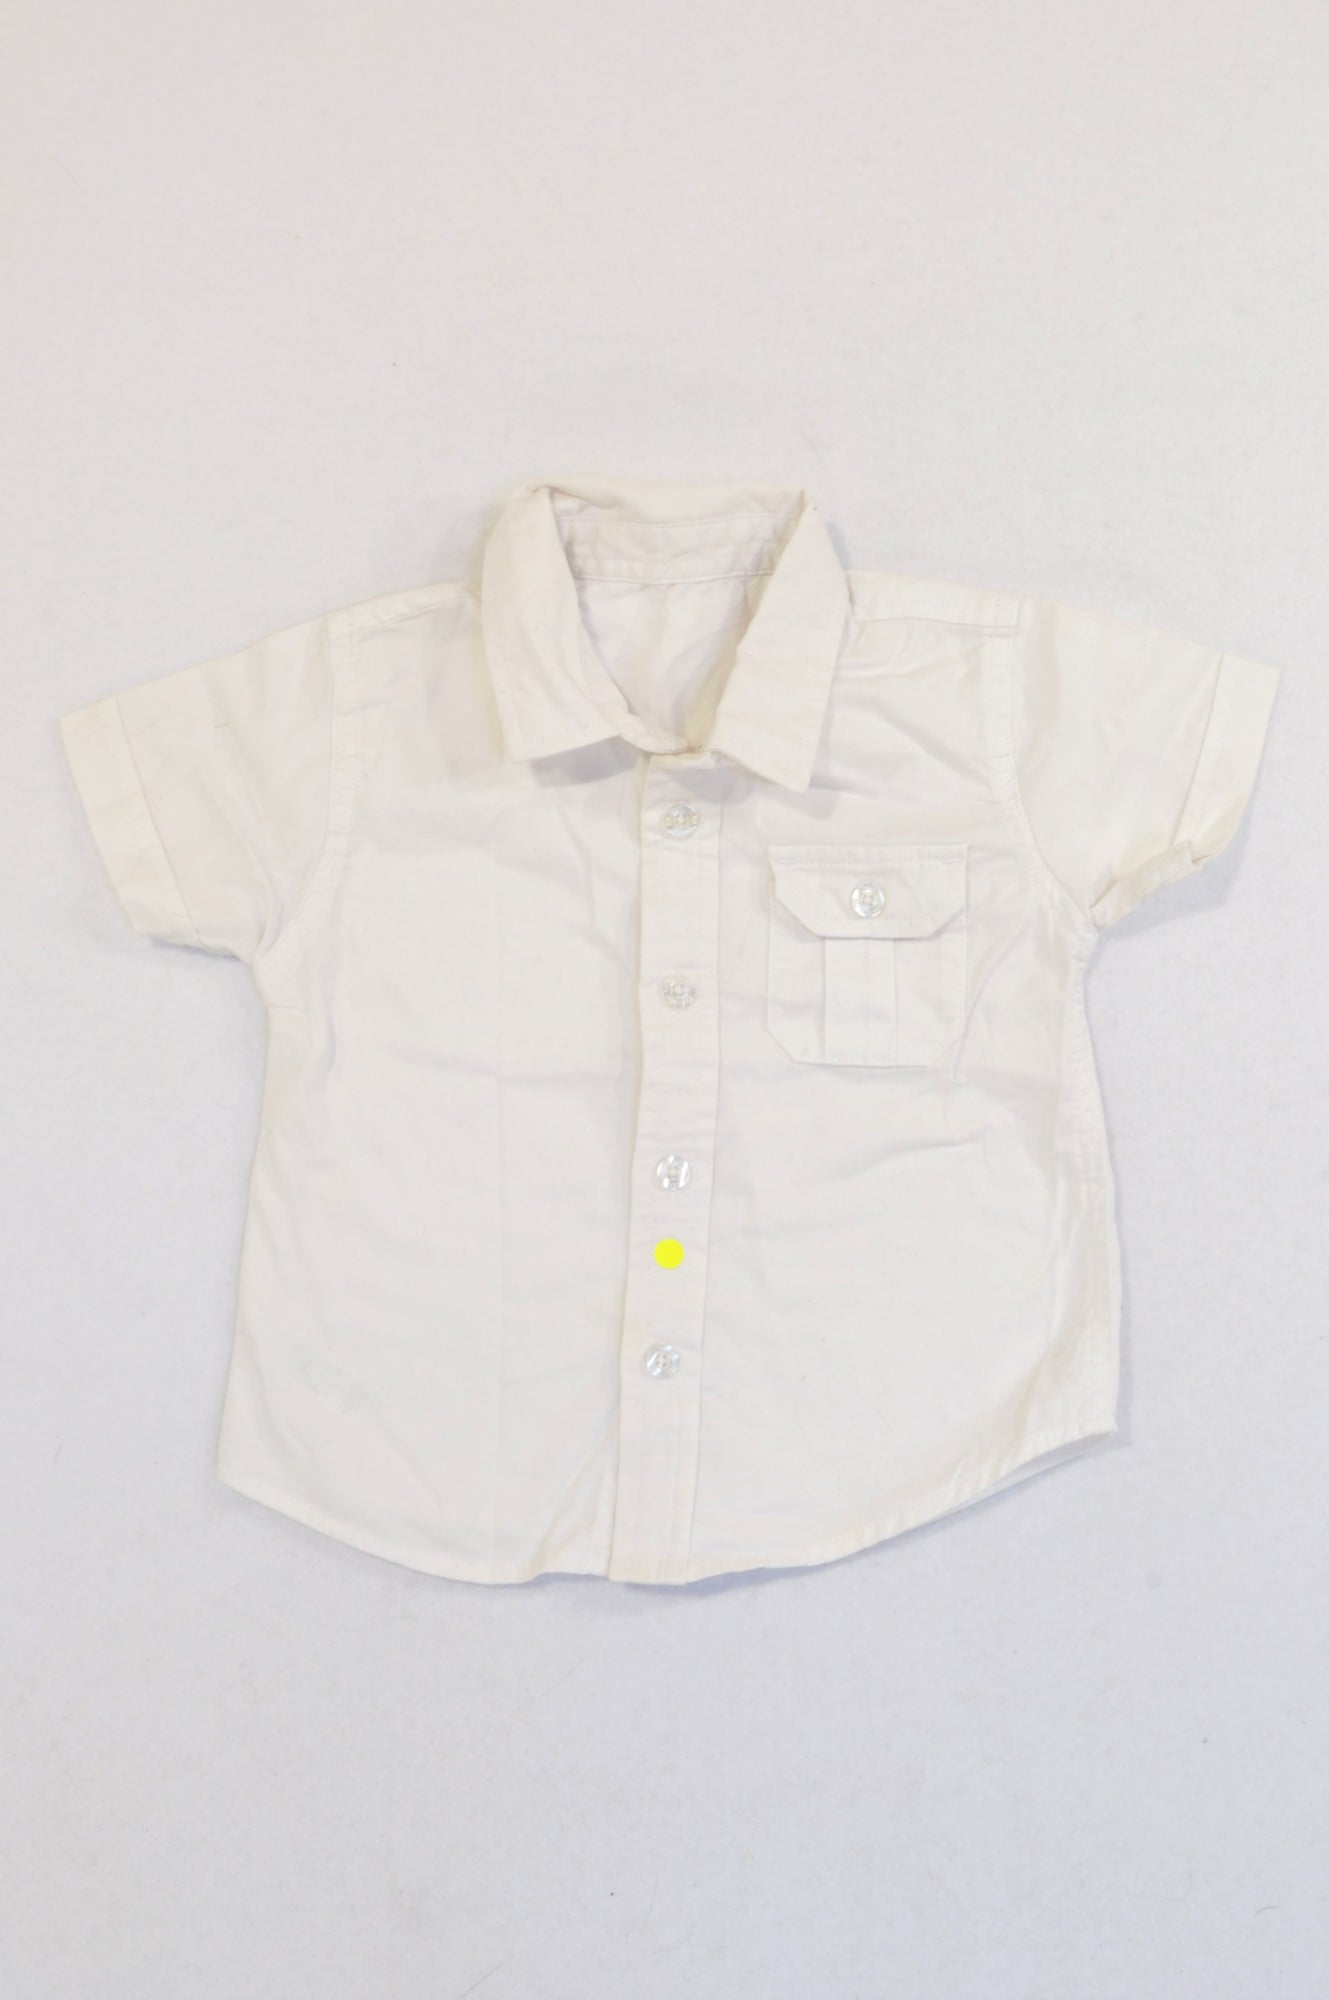 Woolworths Basic White Short Sleeve Collared Shirt Boys 6-12 months